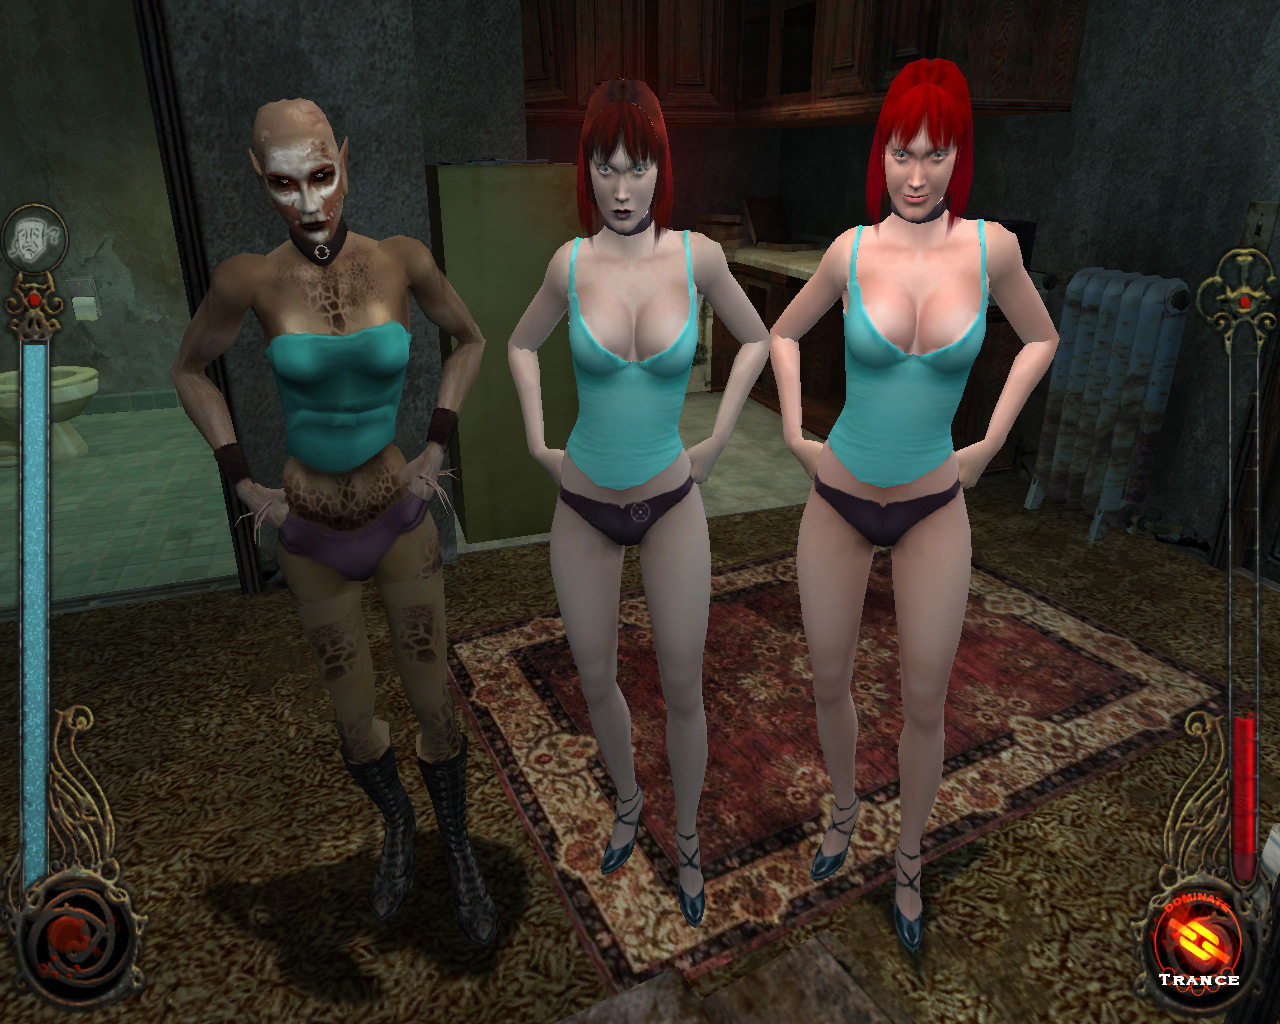 Vampire the masquerade sex mod nude photo